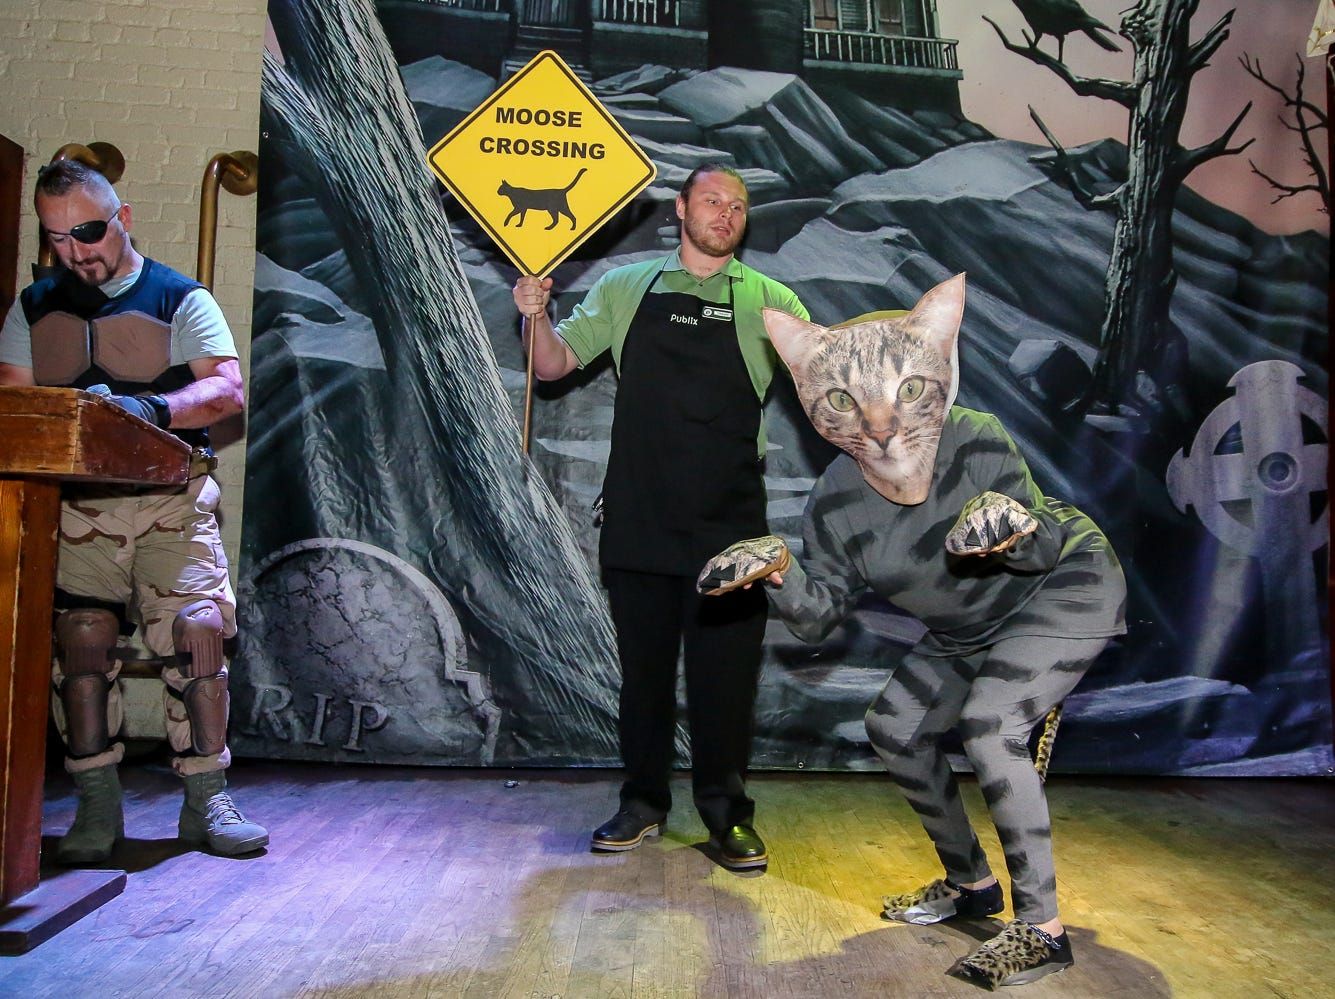 """'Moose' the cat and his Publix employee"" won 6th place in the $1,000 grand prize Halloween costume contest, which featured over 100 entrants, at Seville Quarter on Wednesday, October 31, 2018."